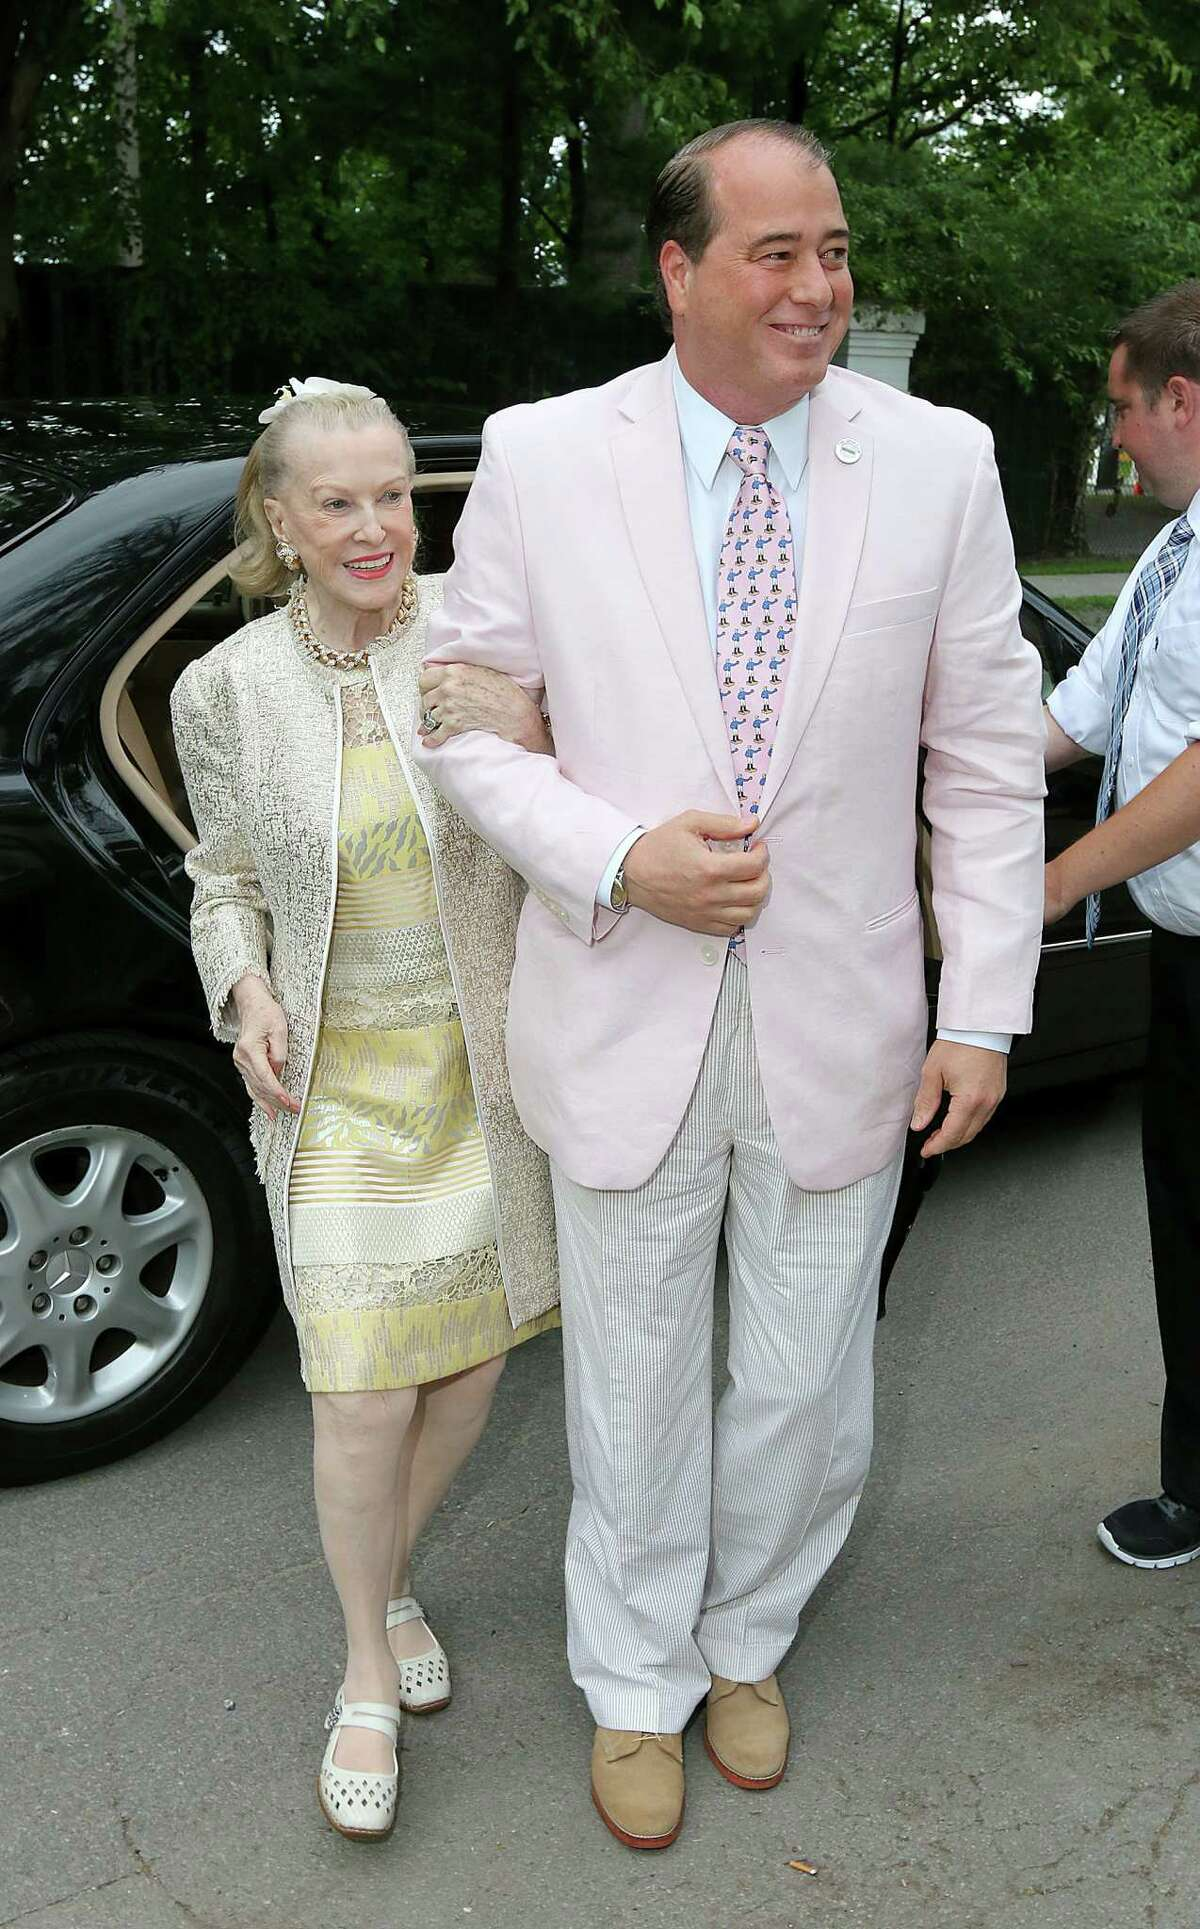 Saratoga Springs, NY - July 17, 2014 - (Photo by Joe Putrock/Special to the Times Union) - Philanthropist and prominent socialite Marylou Whitney(left) and her husband John Hendrickson(right) arrive at the 21st Annual Newton Plaza Siro's Cup to benefit the Center for Disability Services.